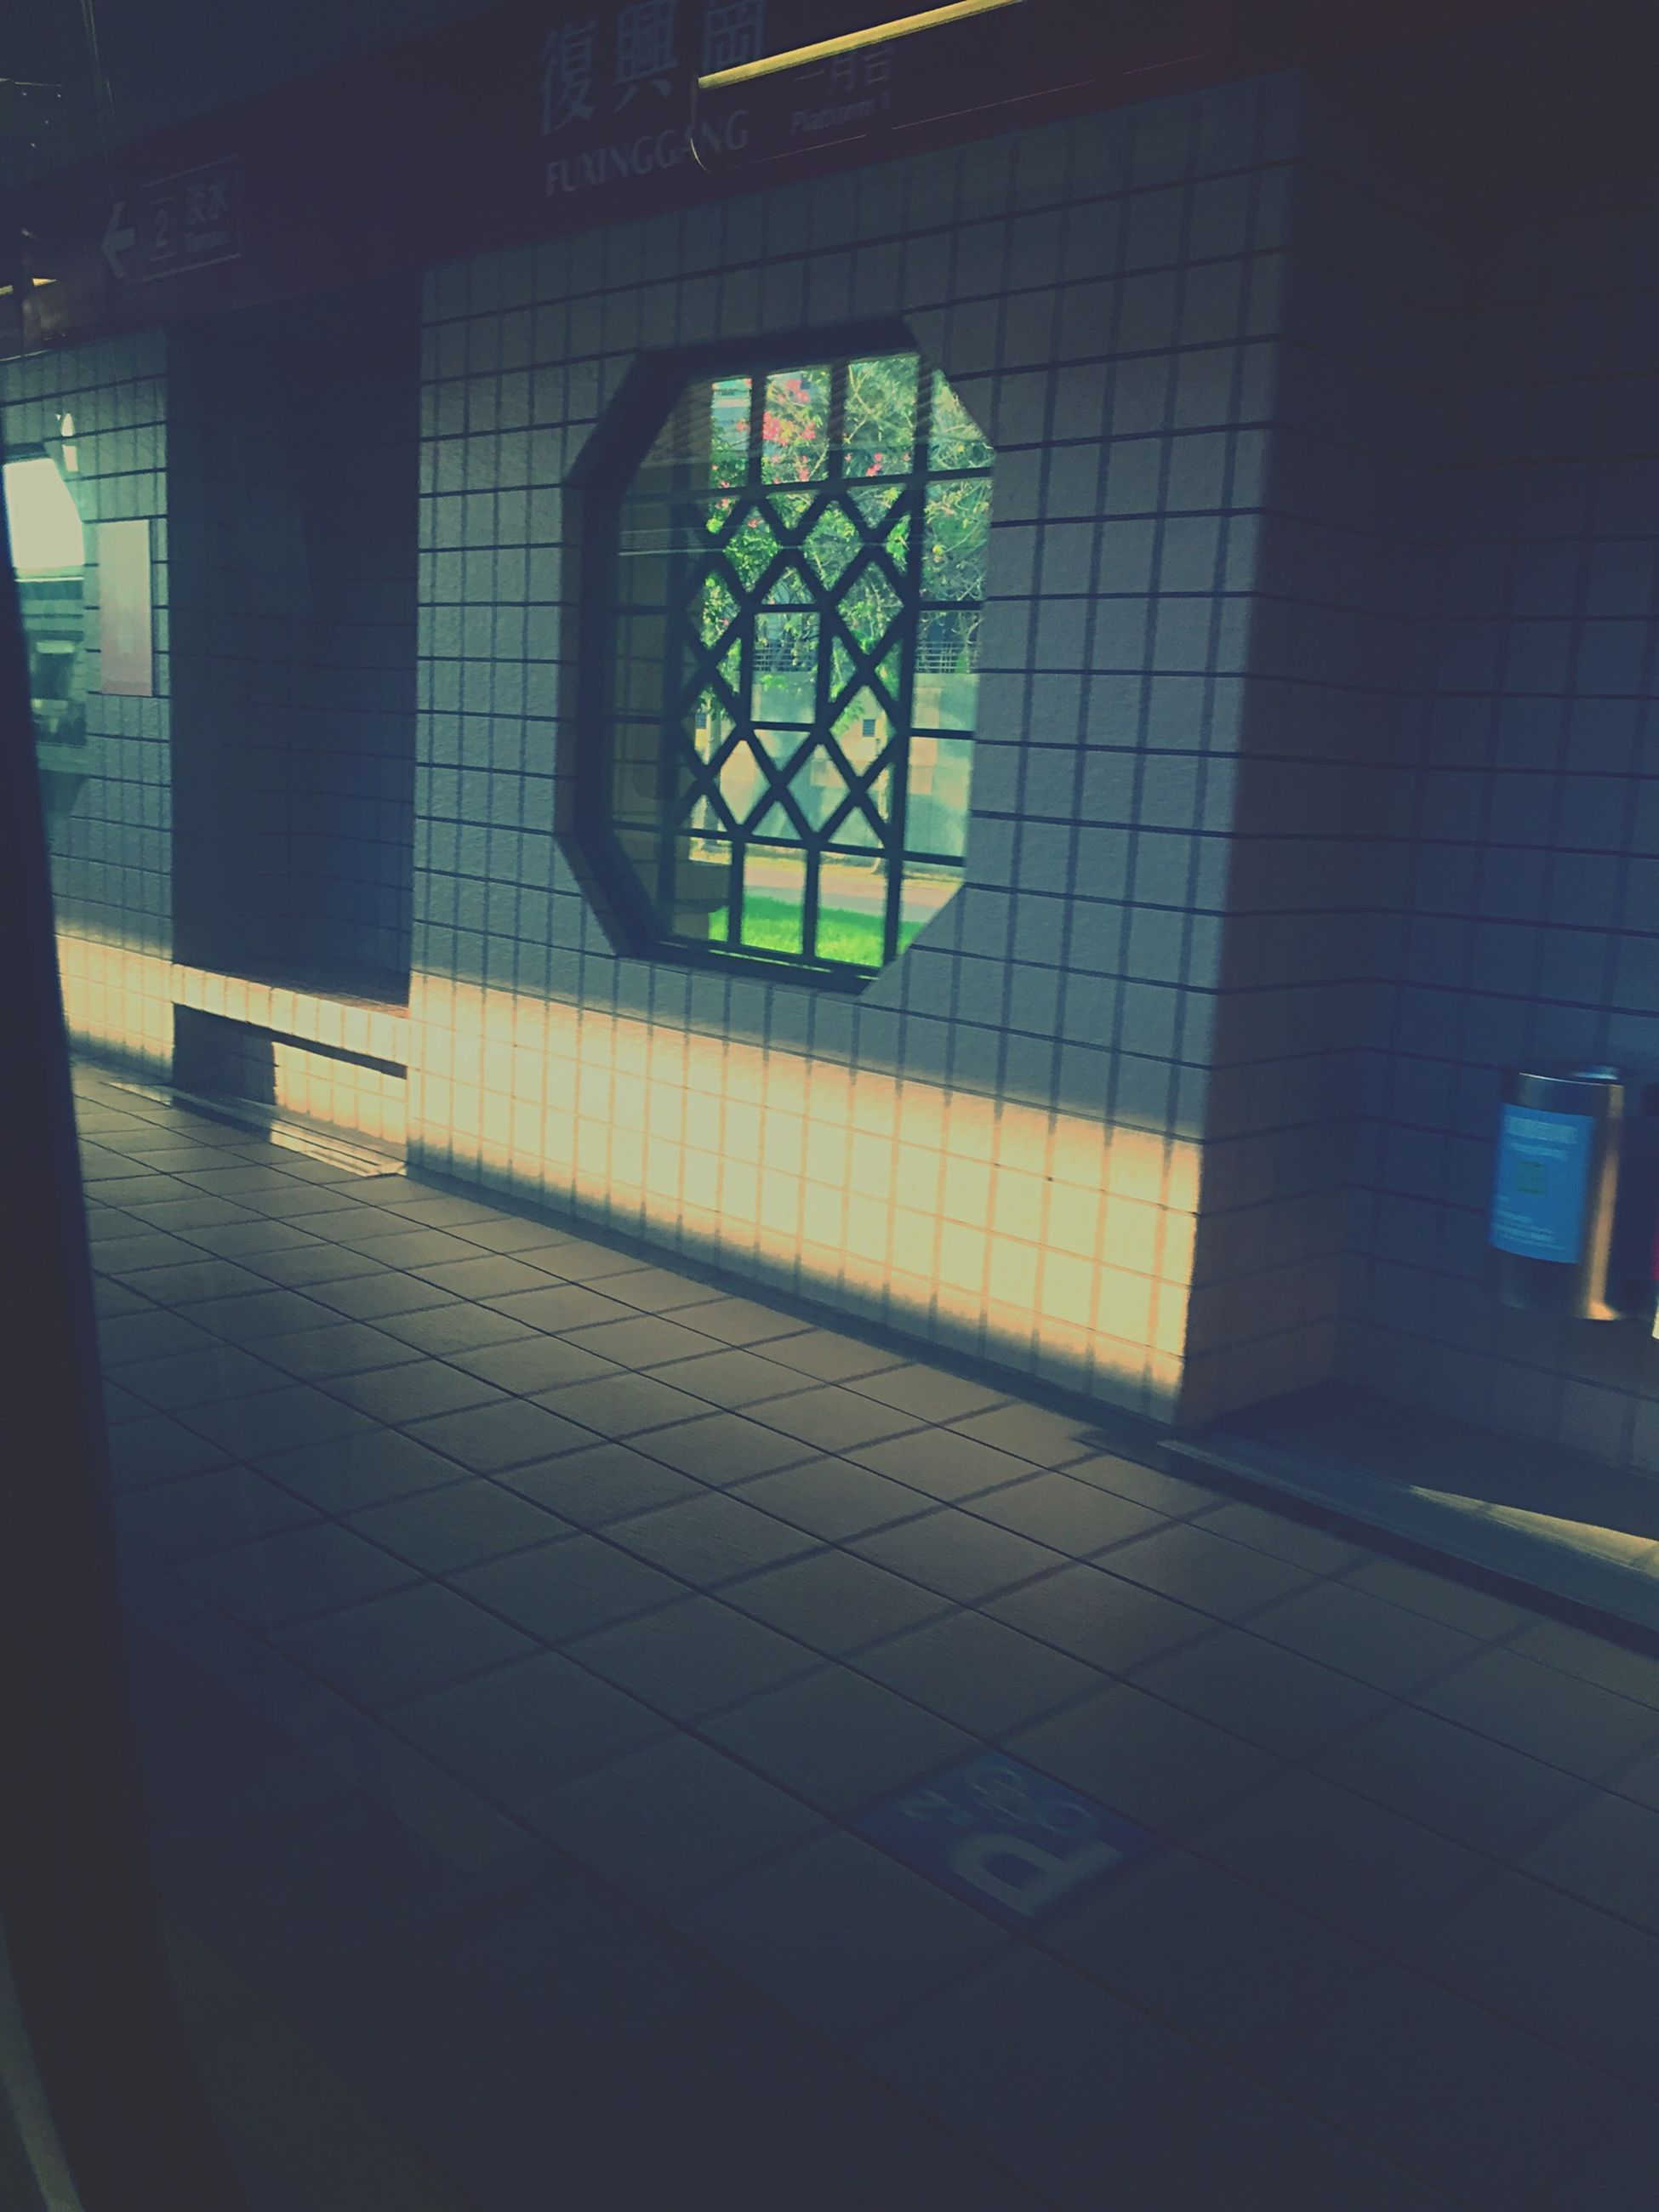 indoors, window, architecture, built structure, glass - material, illuminated, shadow, flooring, sunlight, tiled floor, building exterior, transparent, pattern, no people, wall - building feature, interior, building, reflection, empty, day